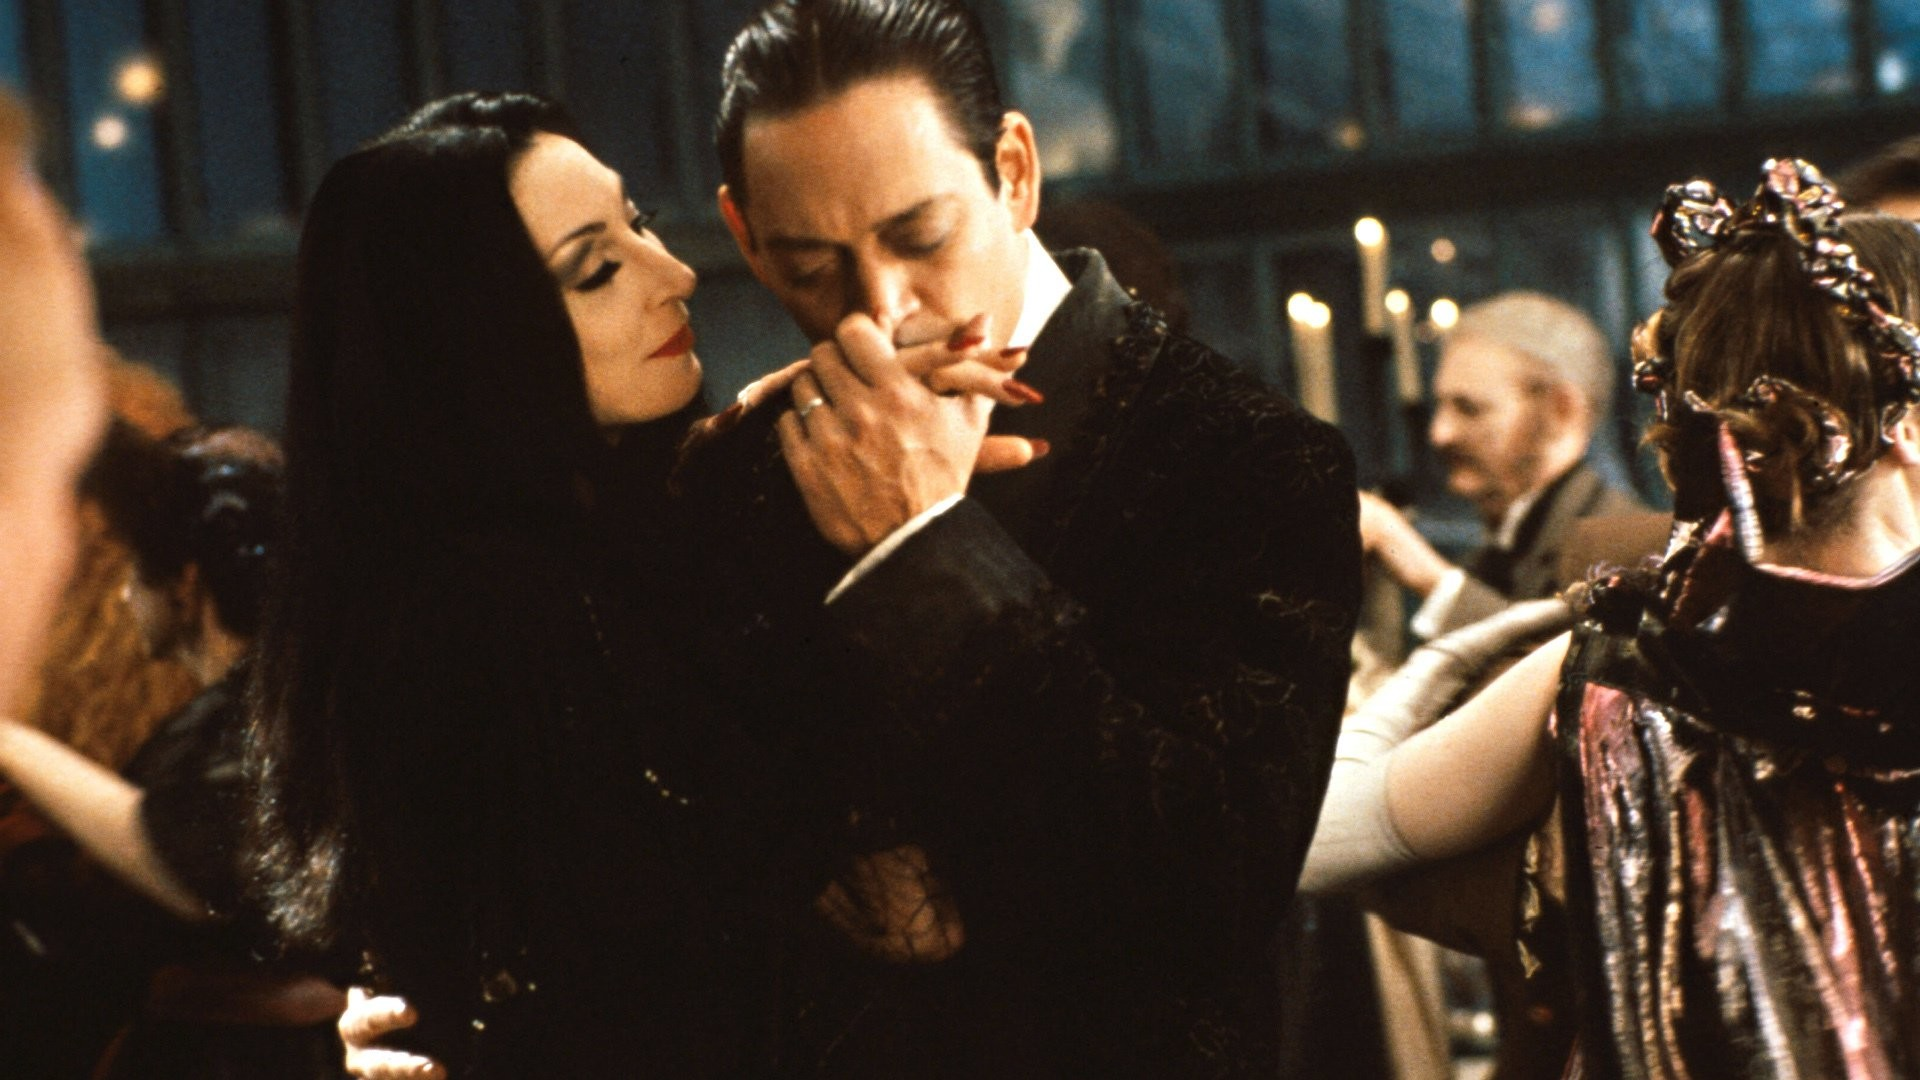 Addams Family Wallpaper (58+ images)